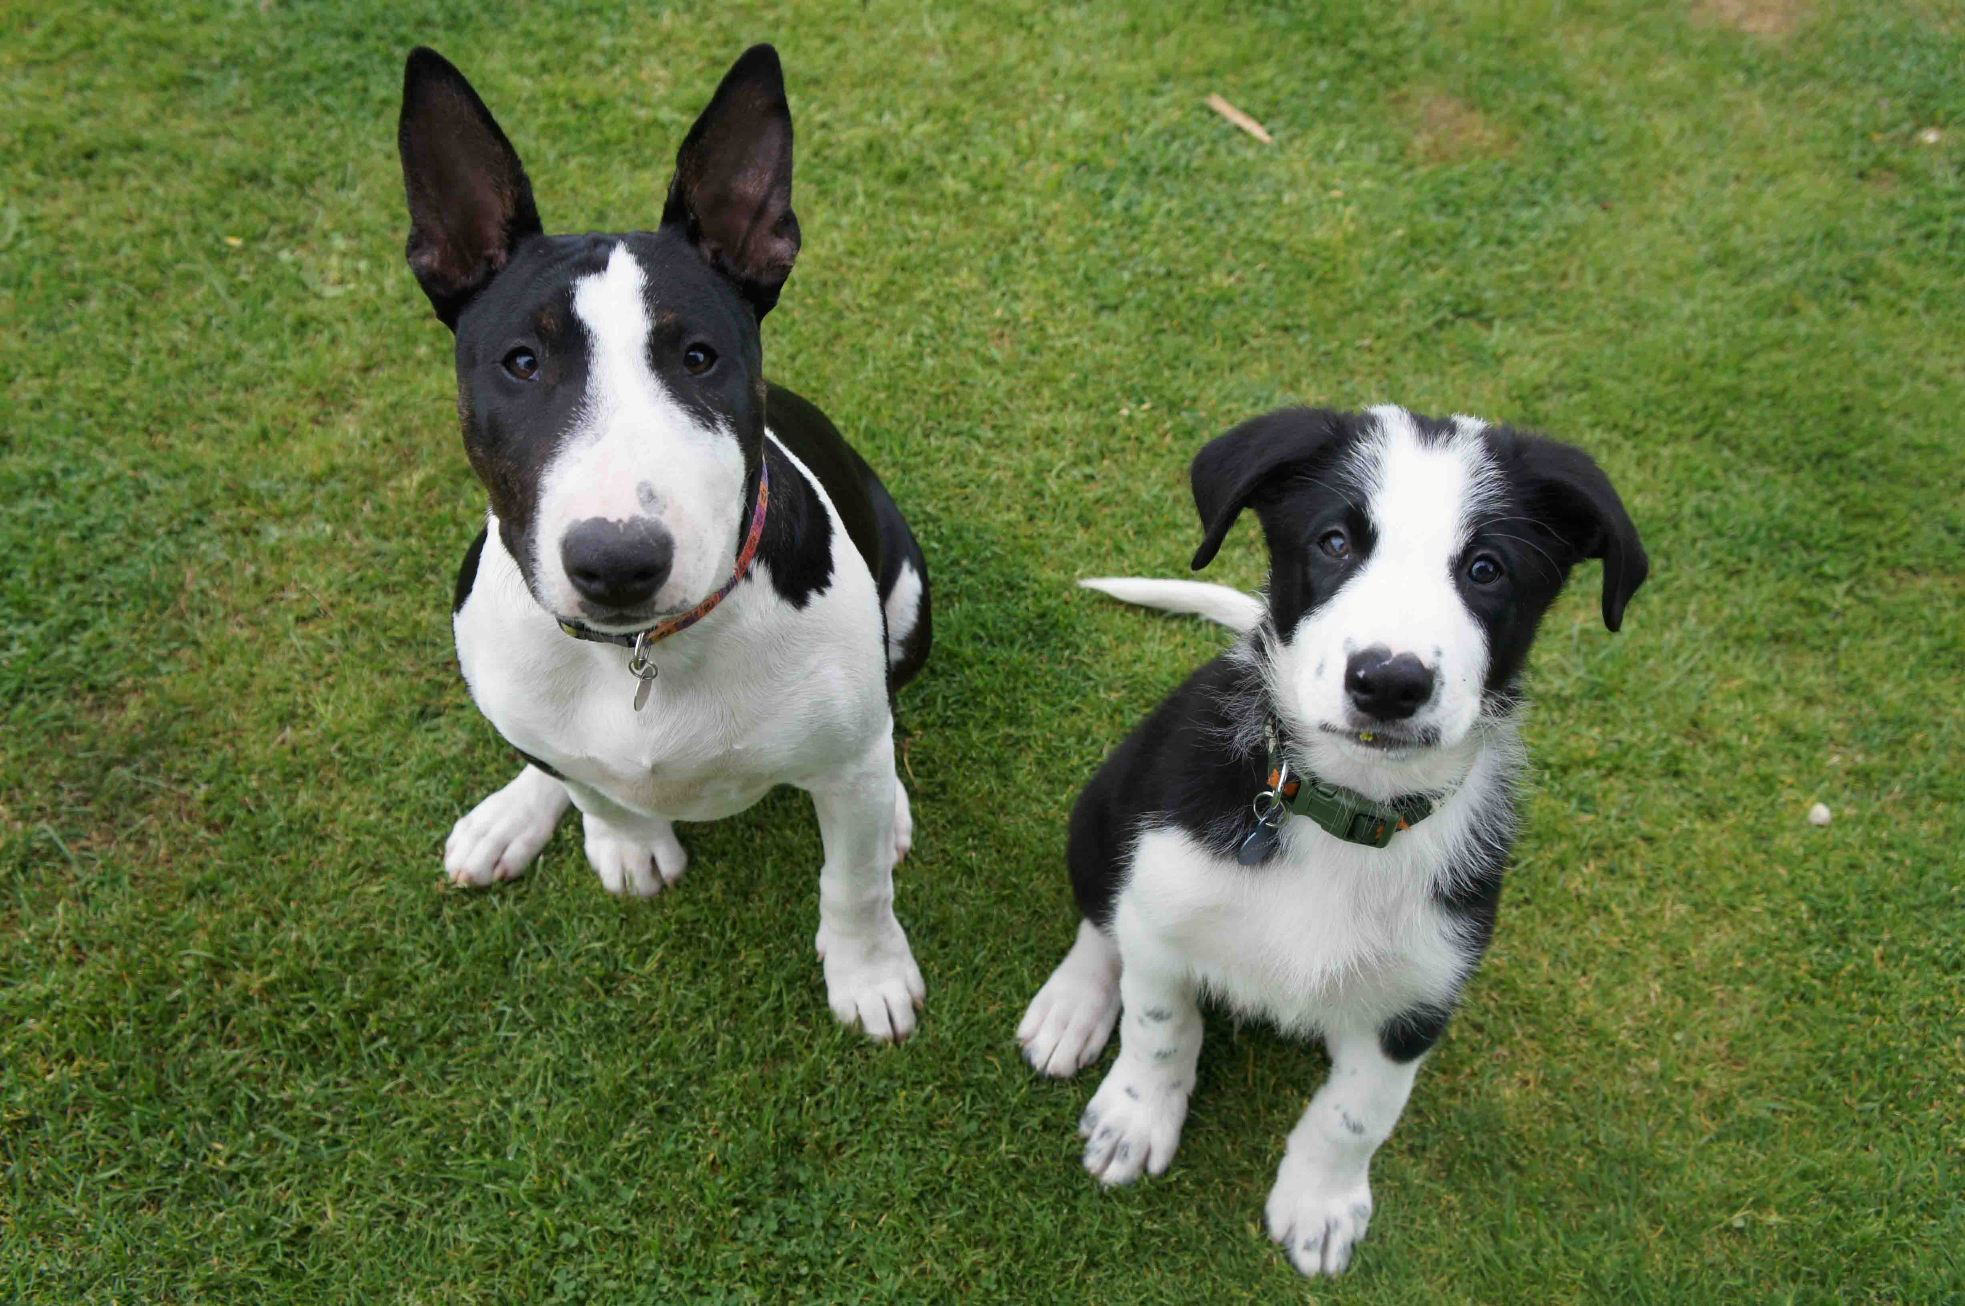 Poppy (left) and Spencer (right) - English Bull Terrier and